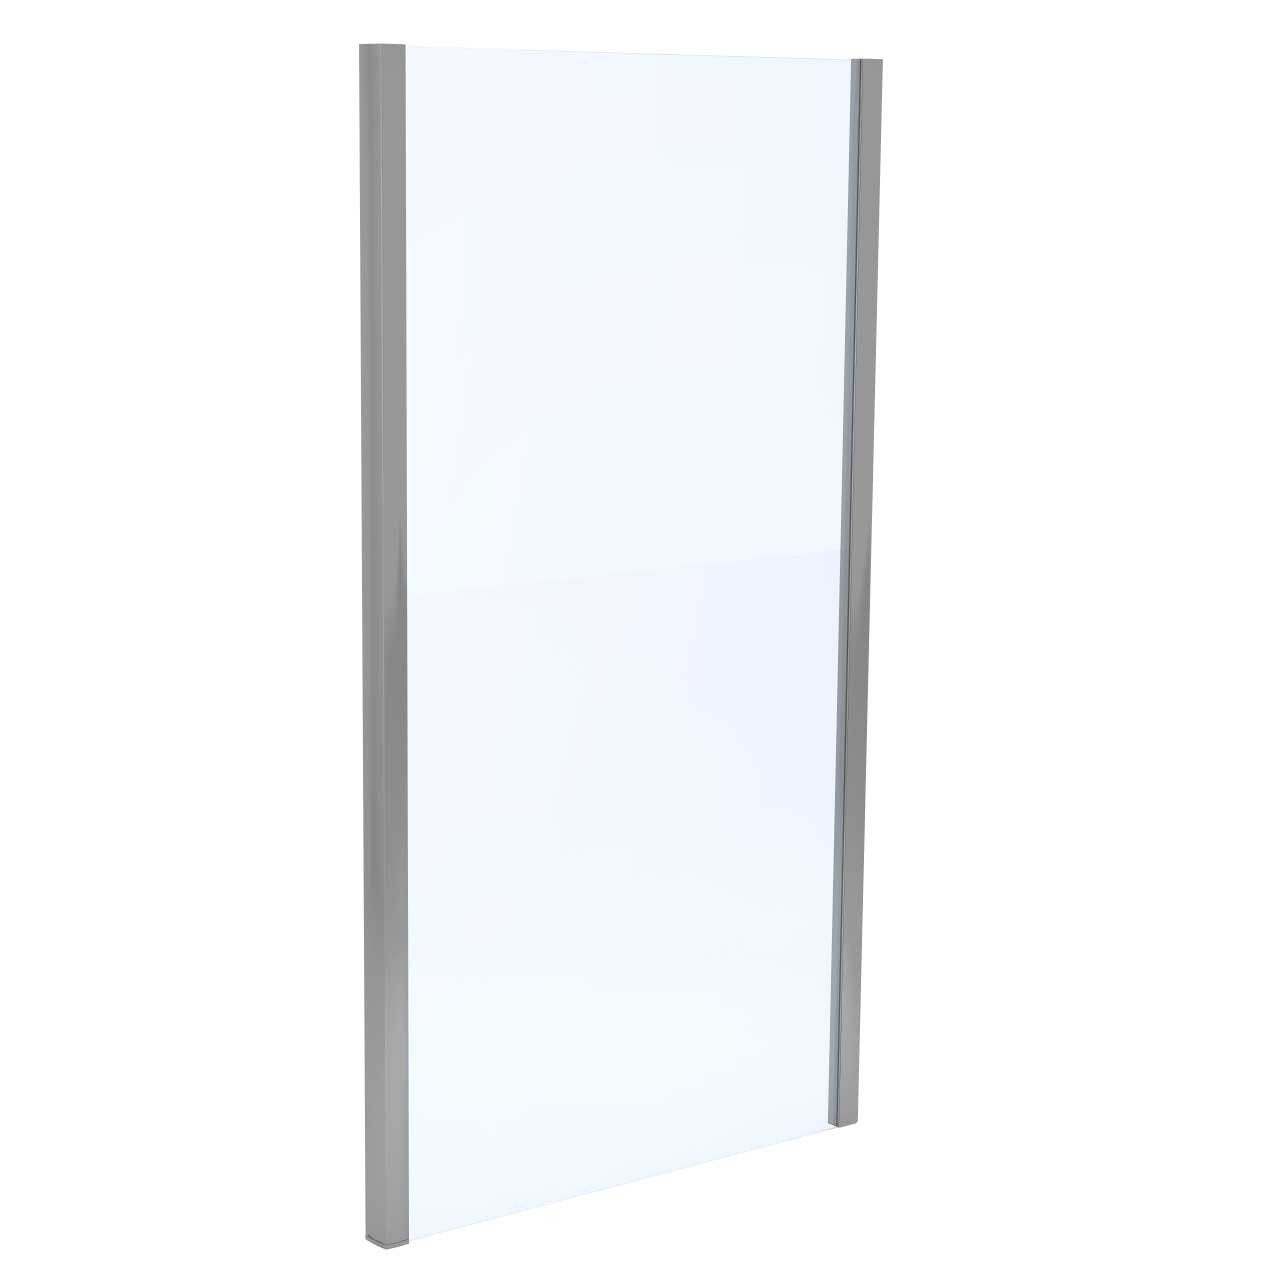 Series 6 800mm x 1000mm Hinged Door Shower Enclosure